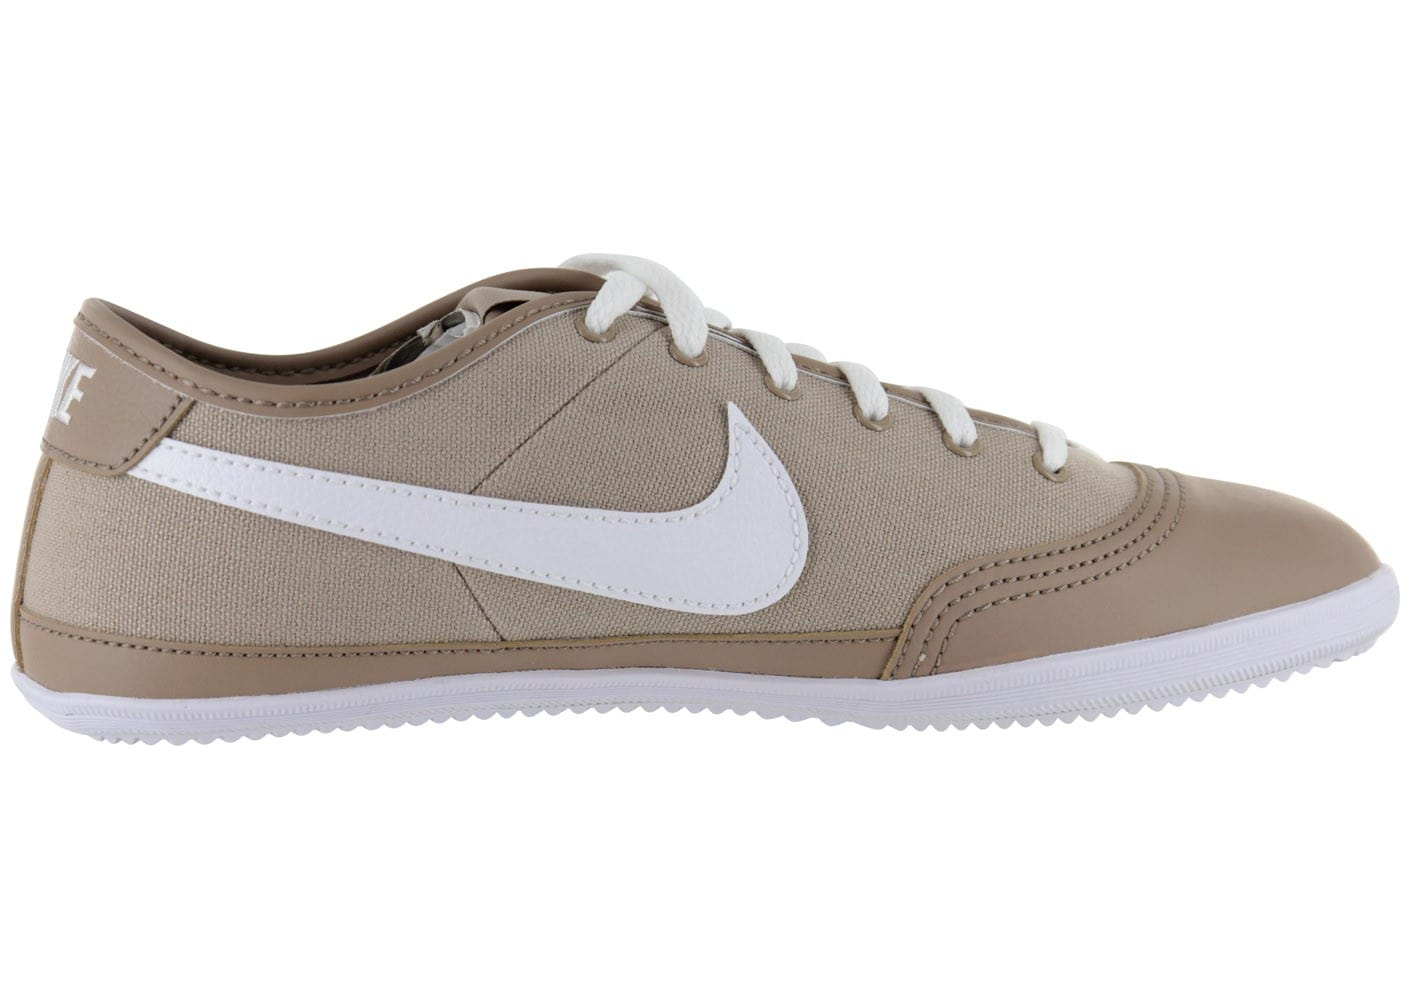 nike flash beige chaussures homme chausport. Black Bedroom Furniture Sets. Home Design Ideas